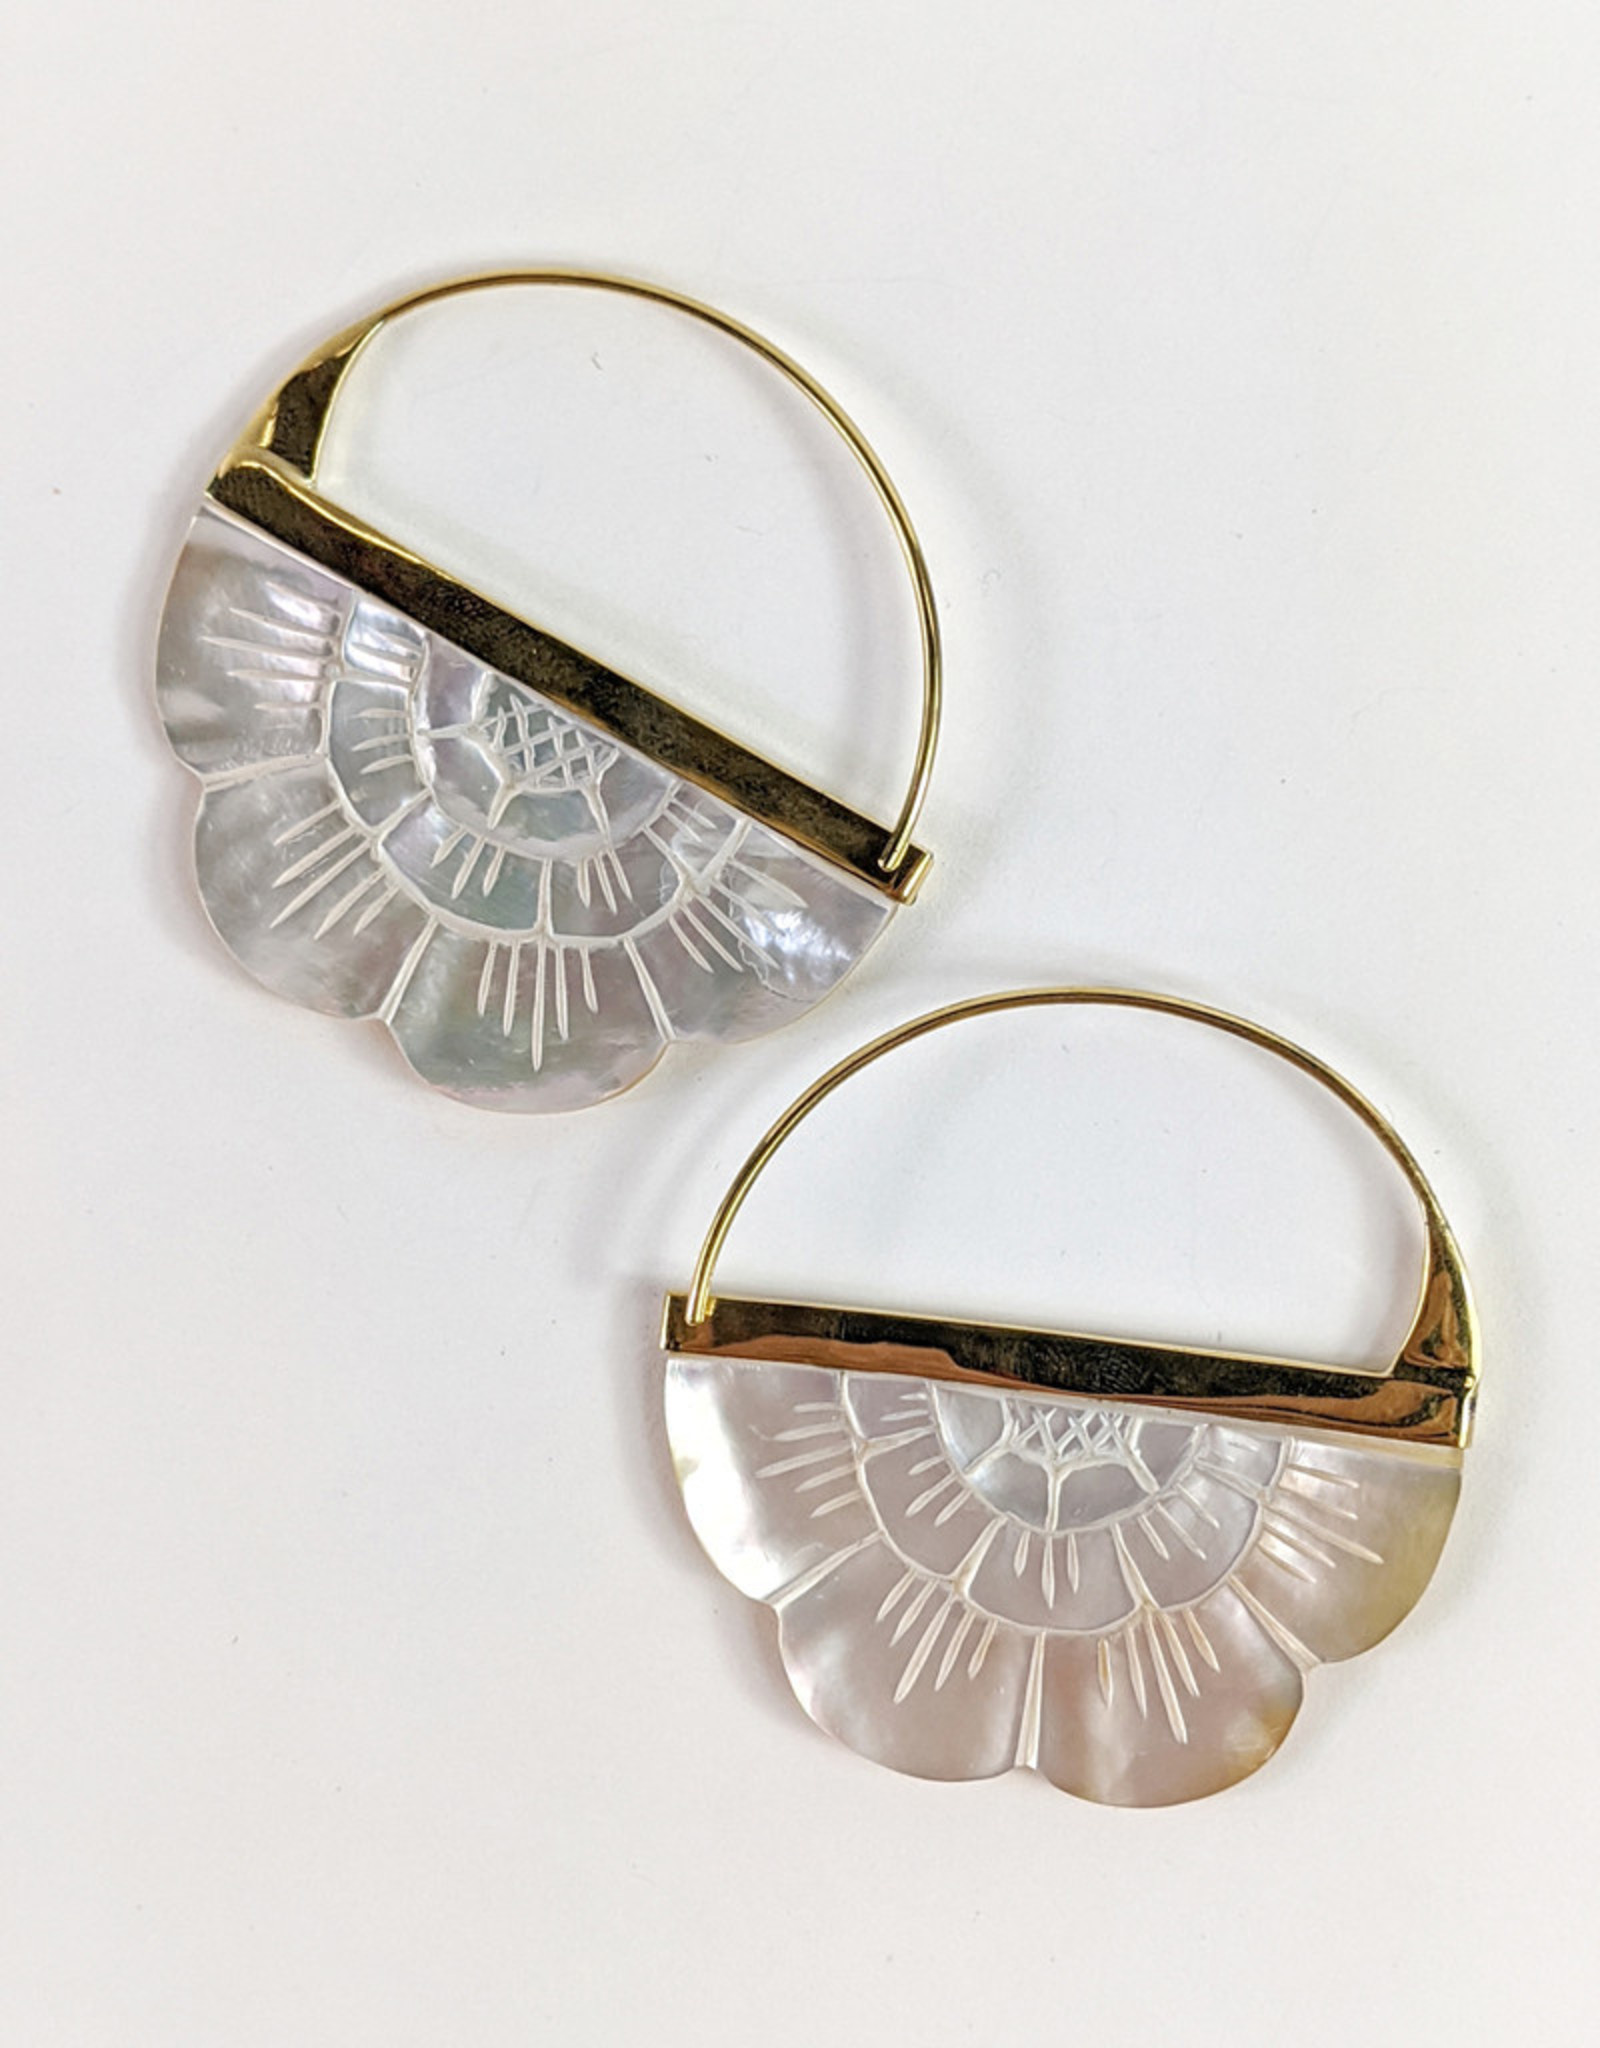 In BlissfulCo Handmade Carved Mother of Pearl Hoops, large